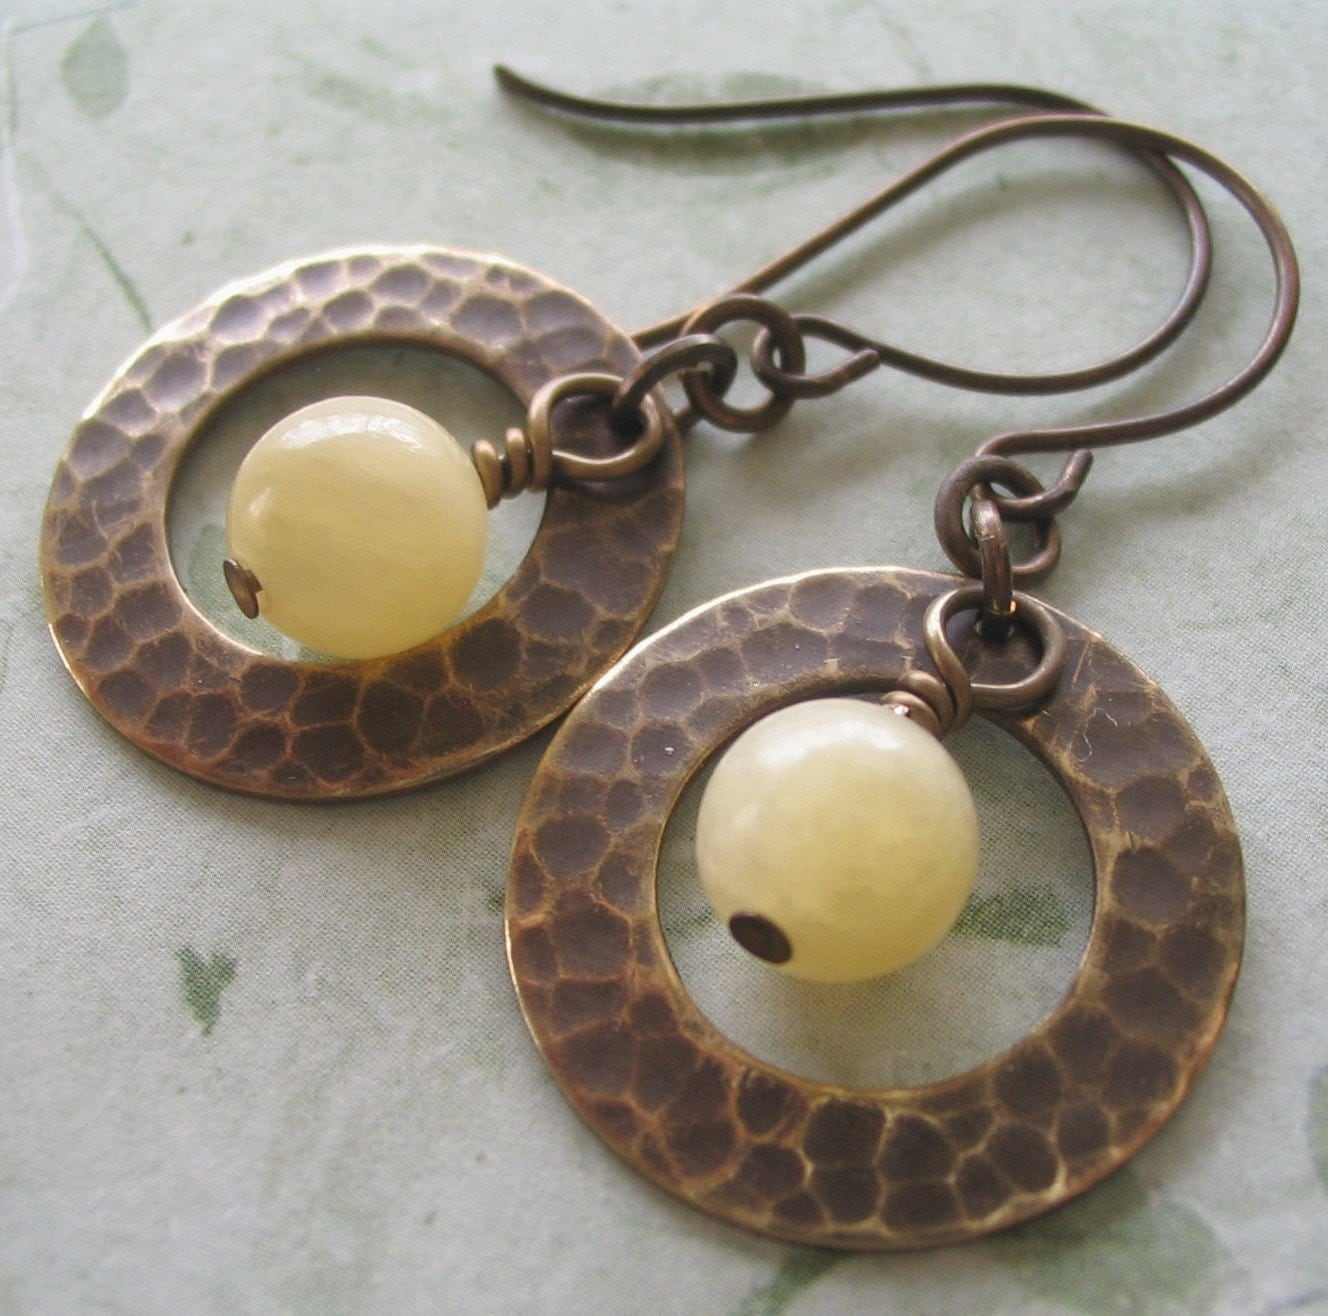 pale yellow gemstone drops inside hammered rings by